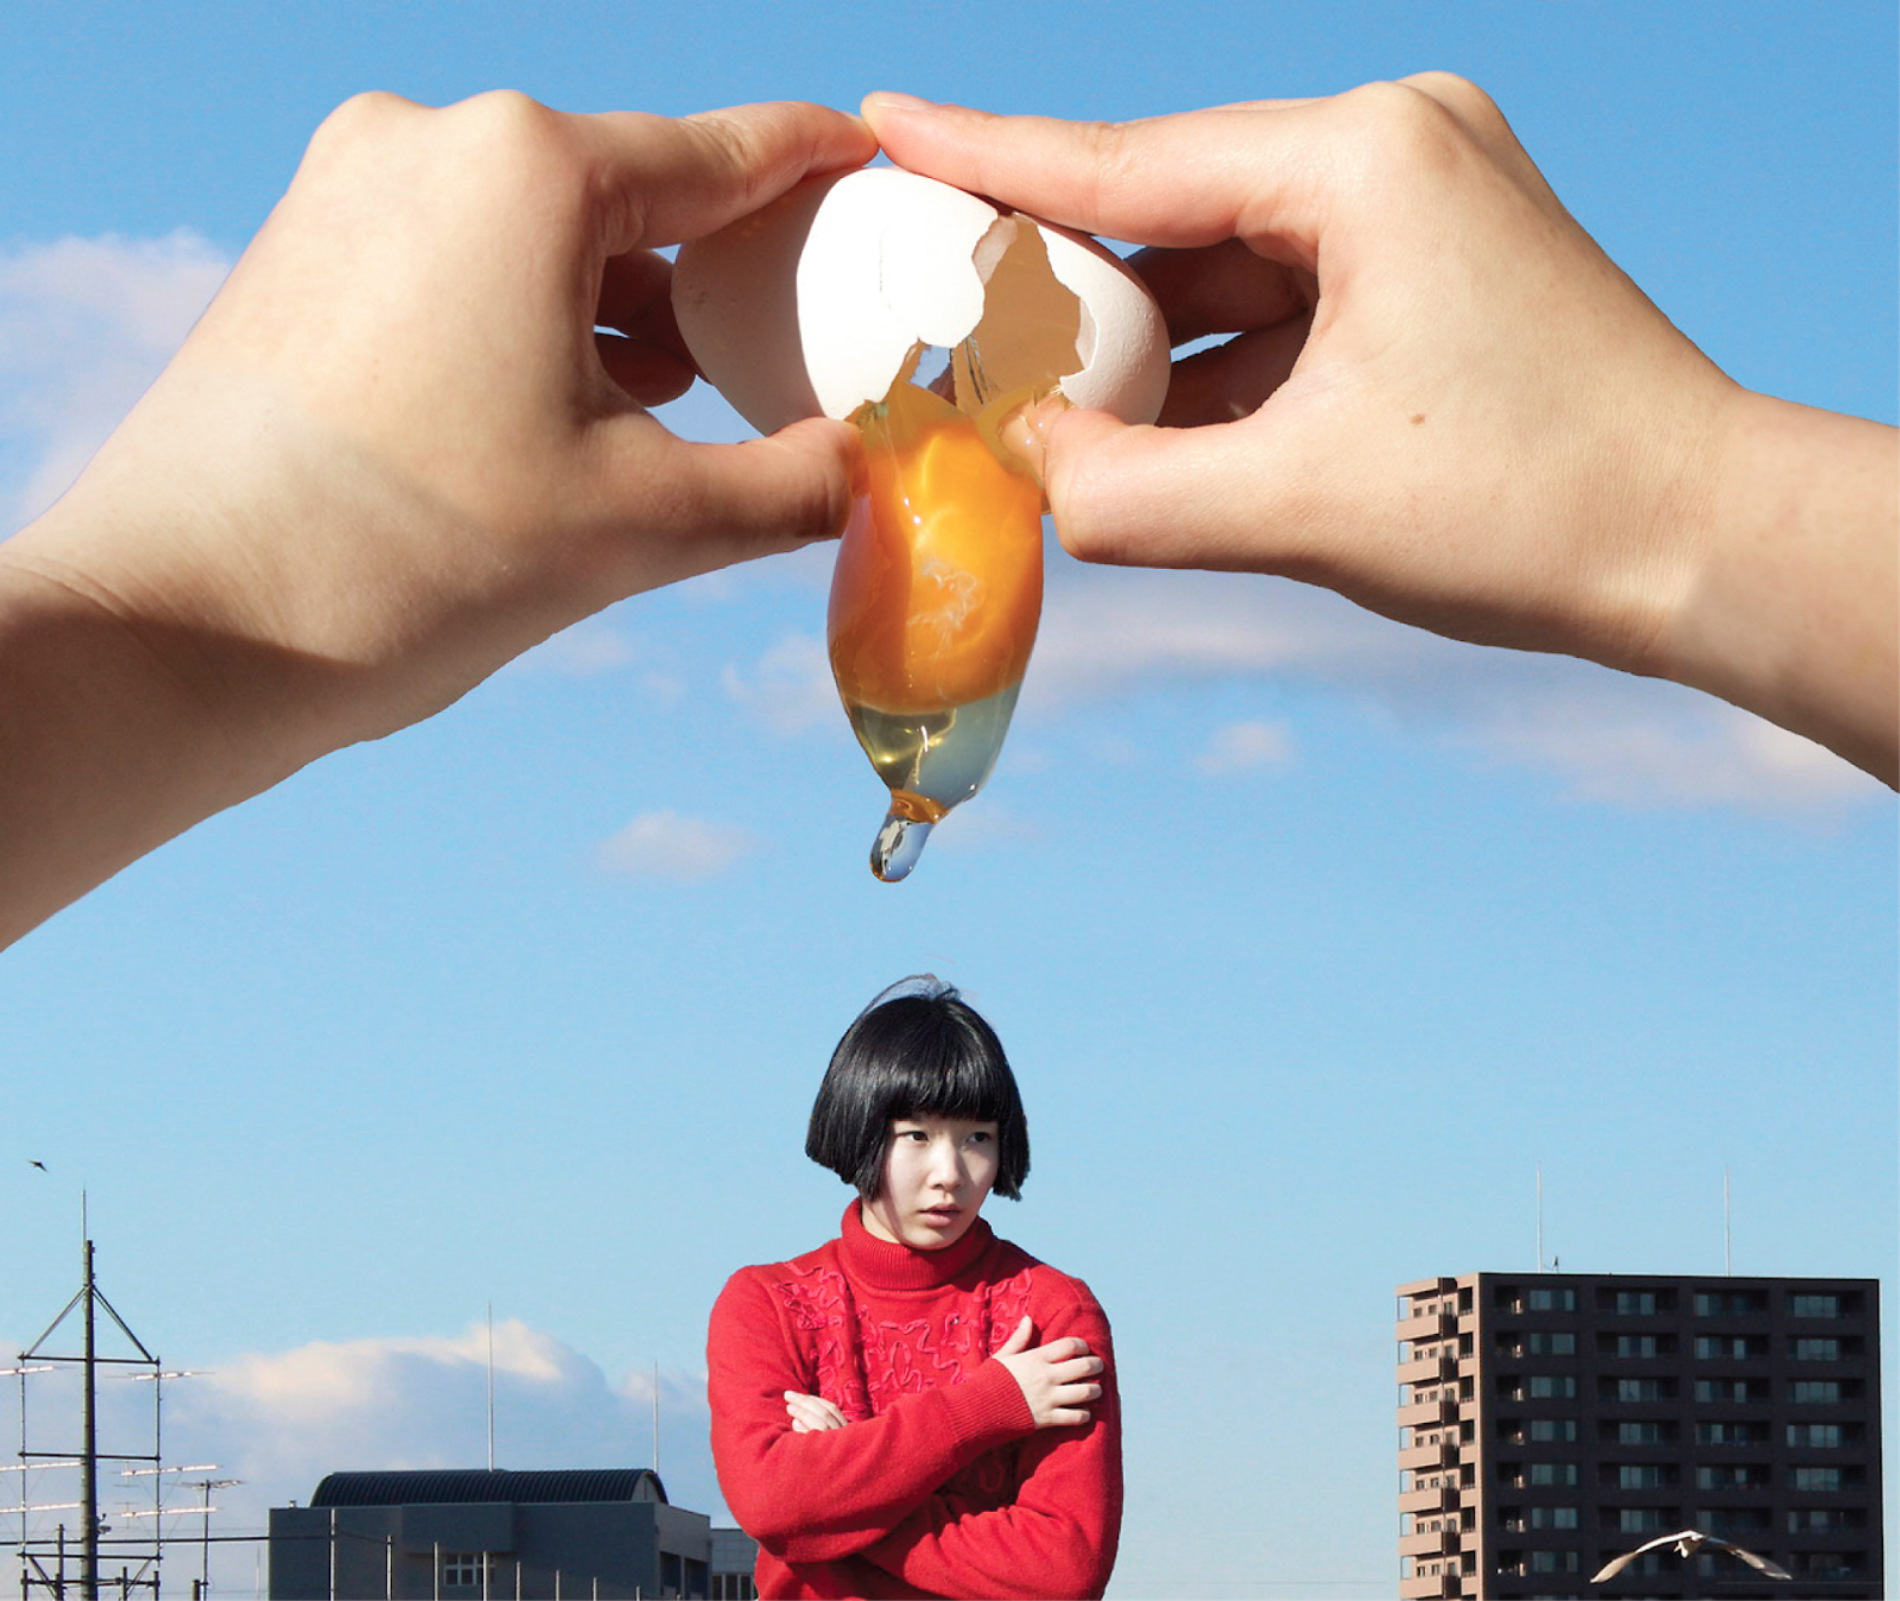 Quirky Self-Portraits by Japanese Photographer